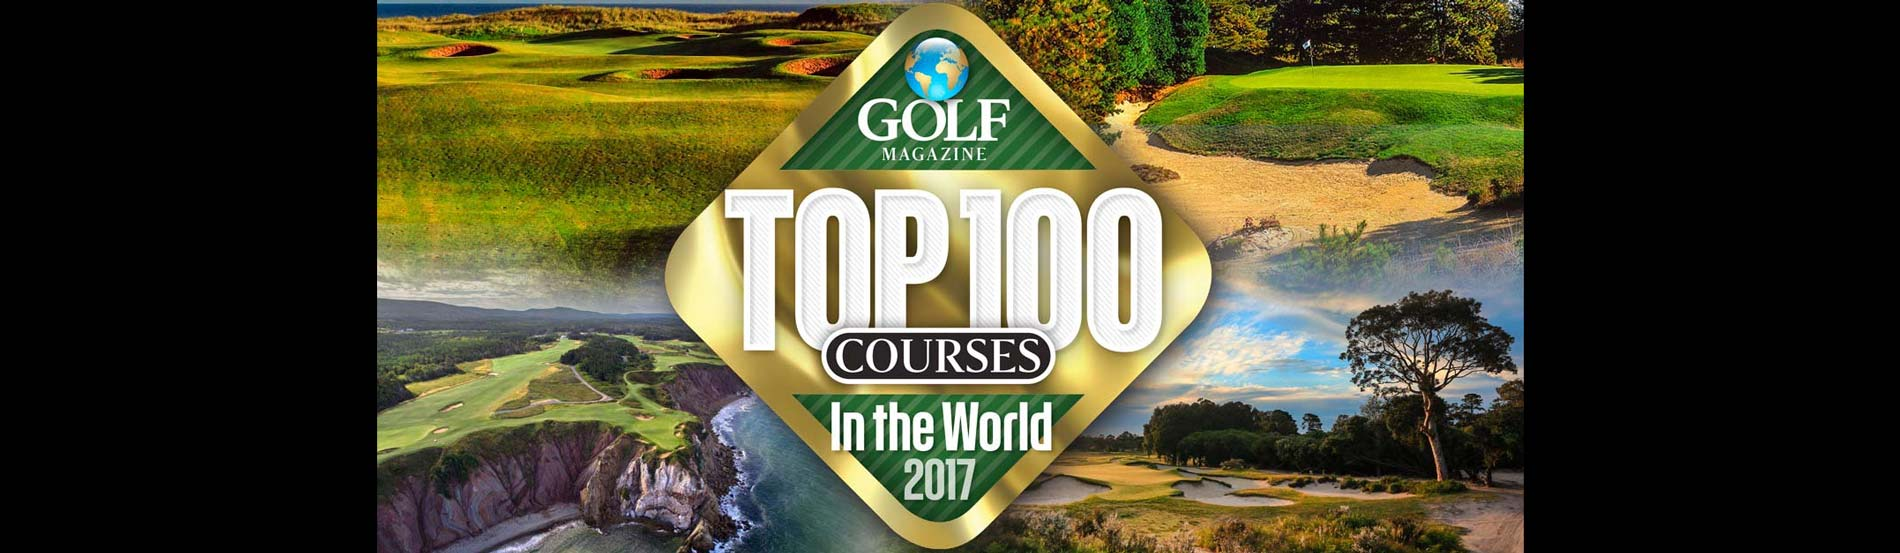 Top 100 Courses in the World 2017-2018.